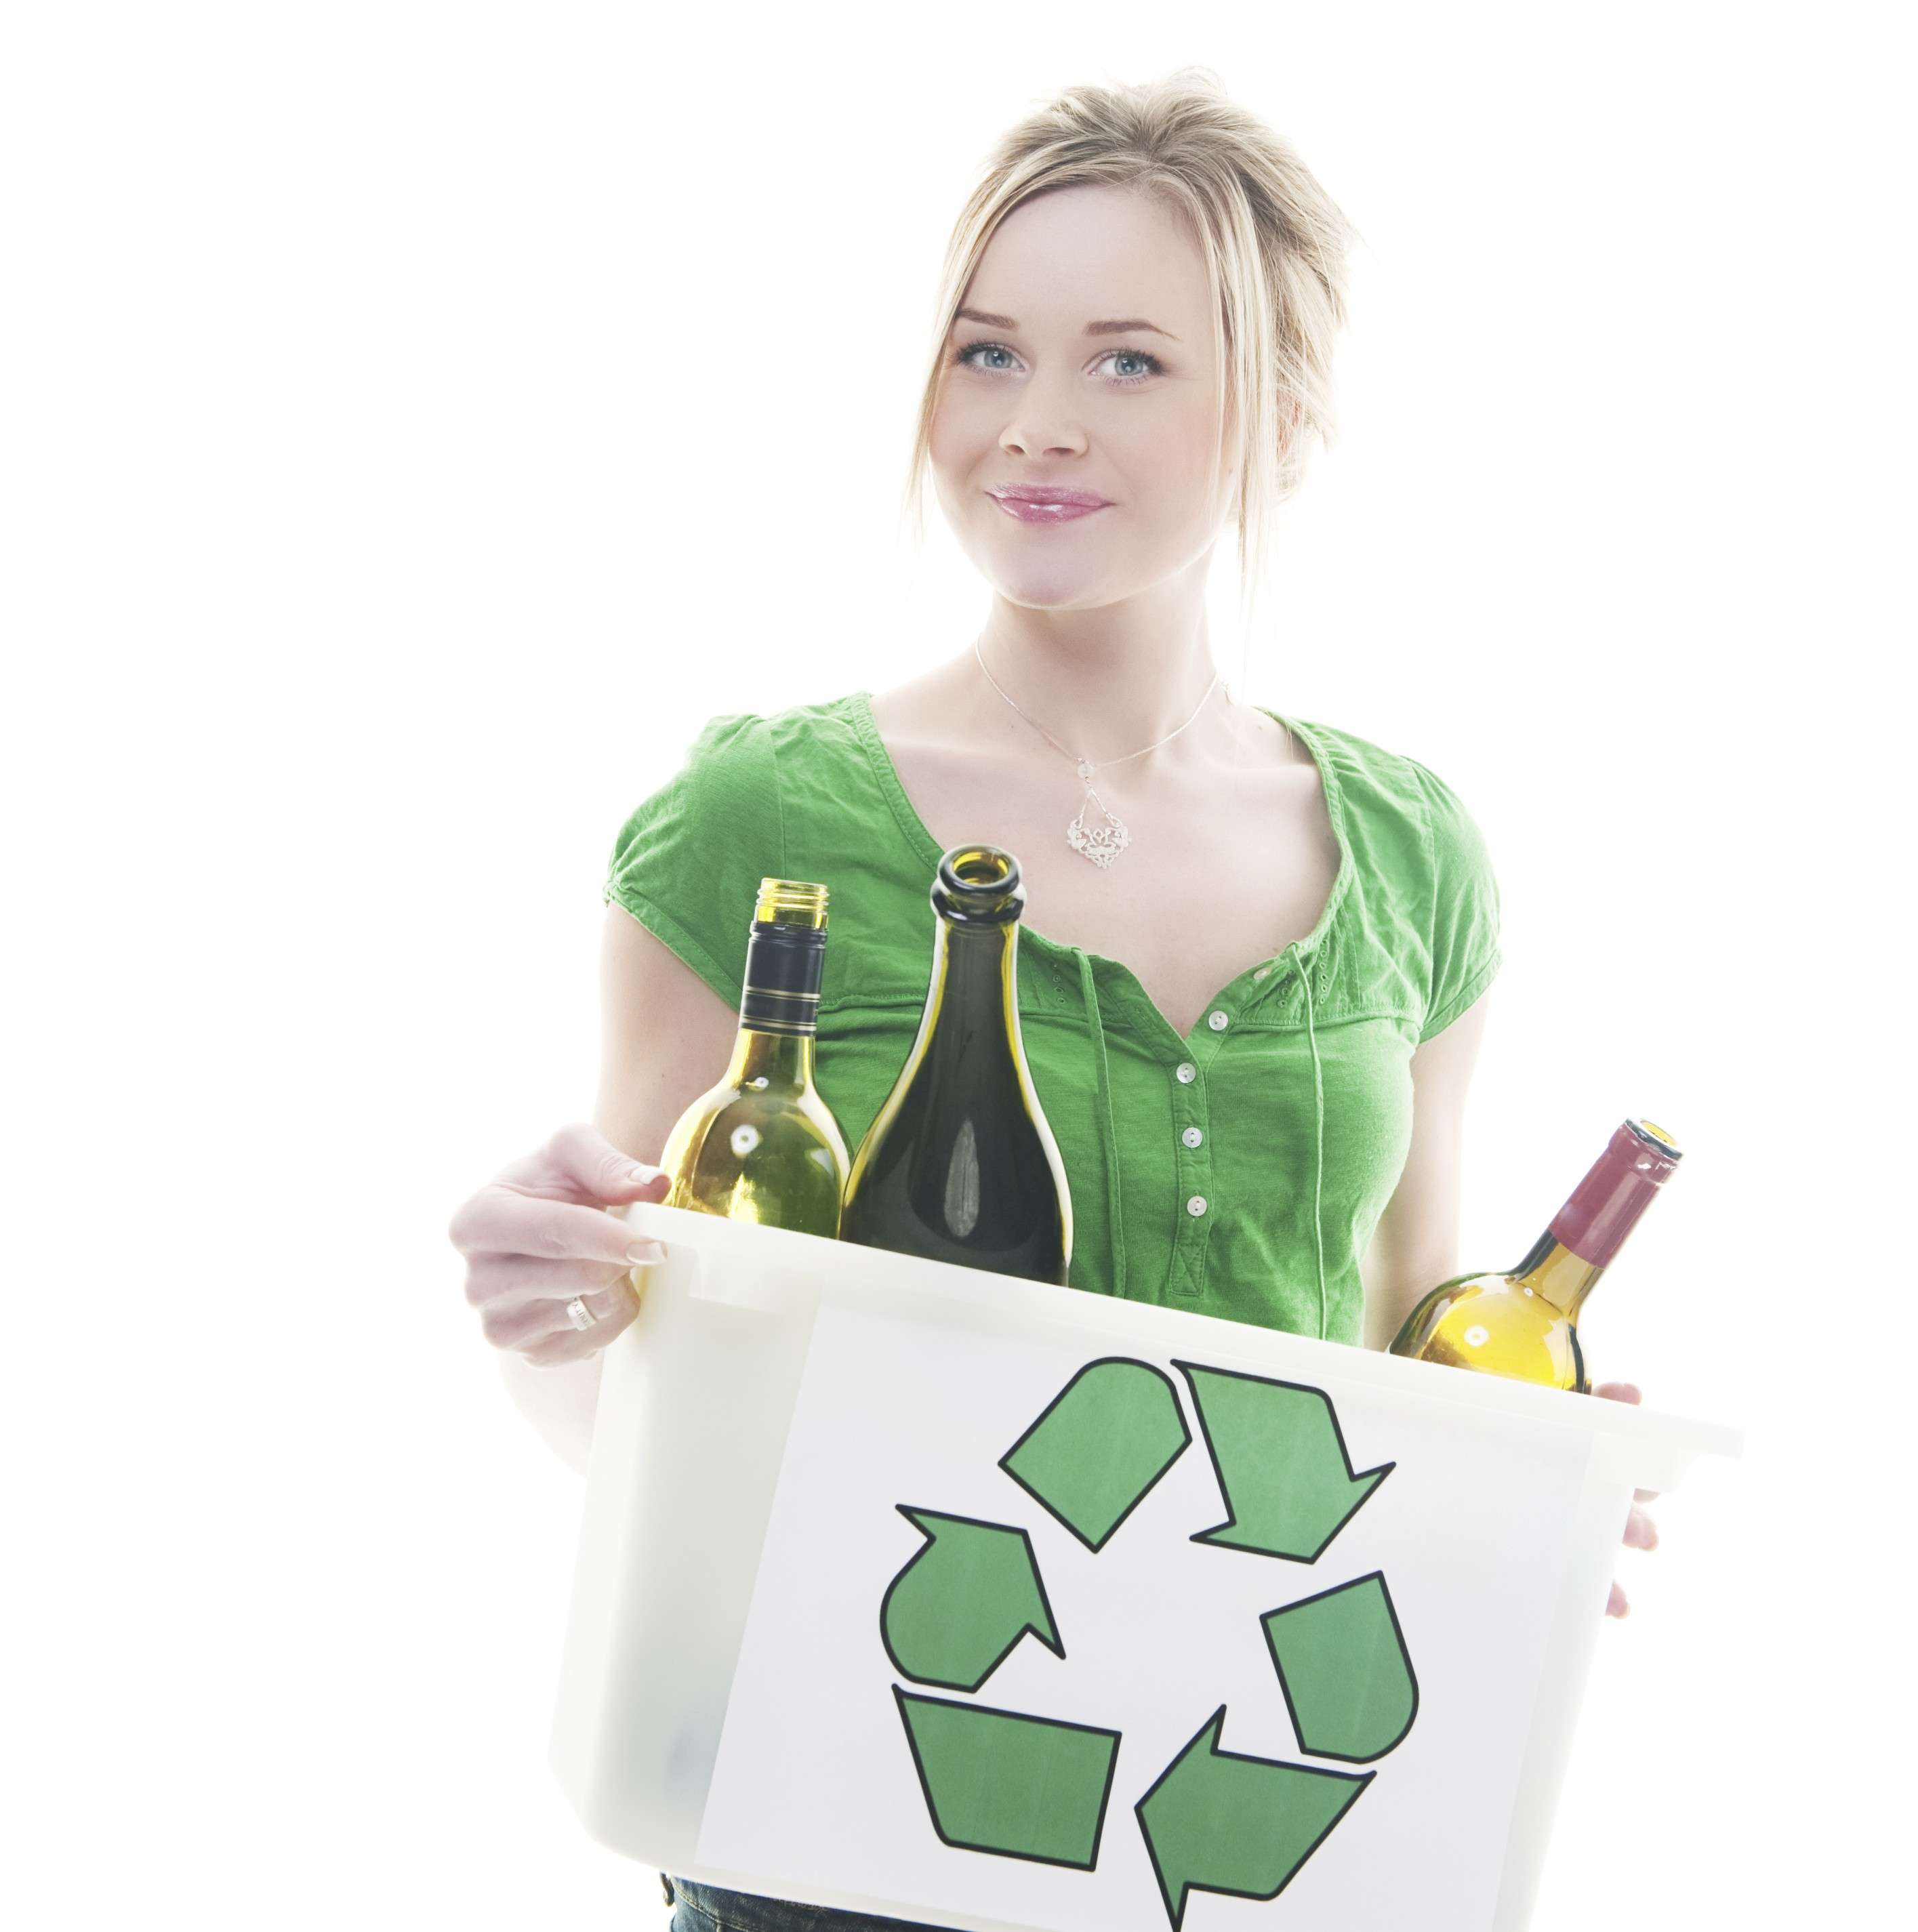 It's Recycle Week – are you missing tricks?